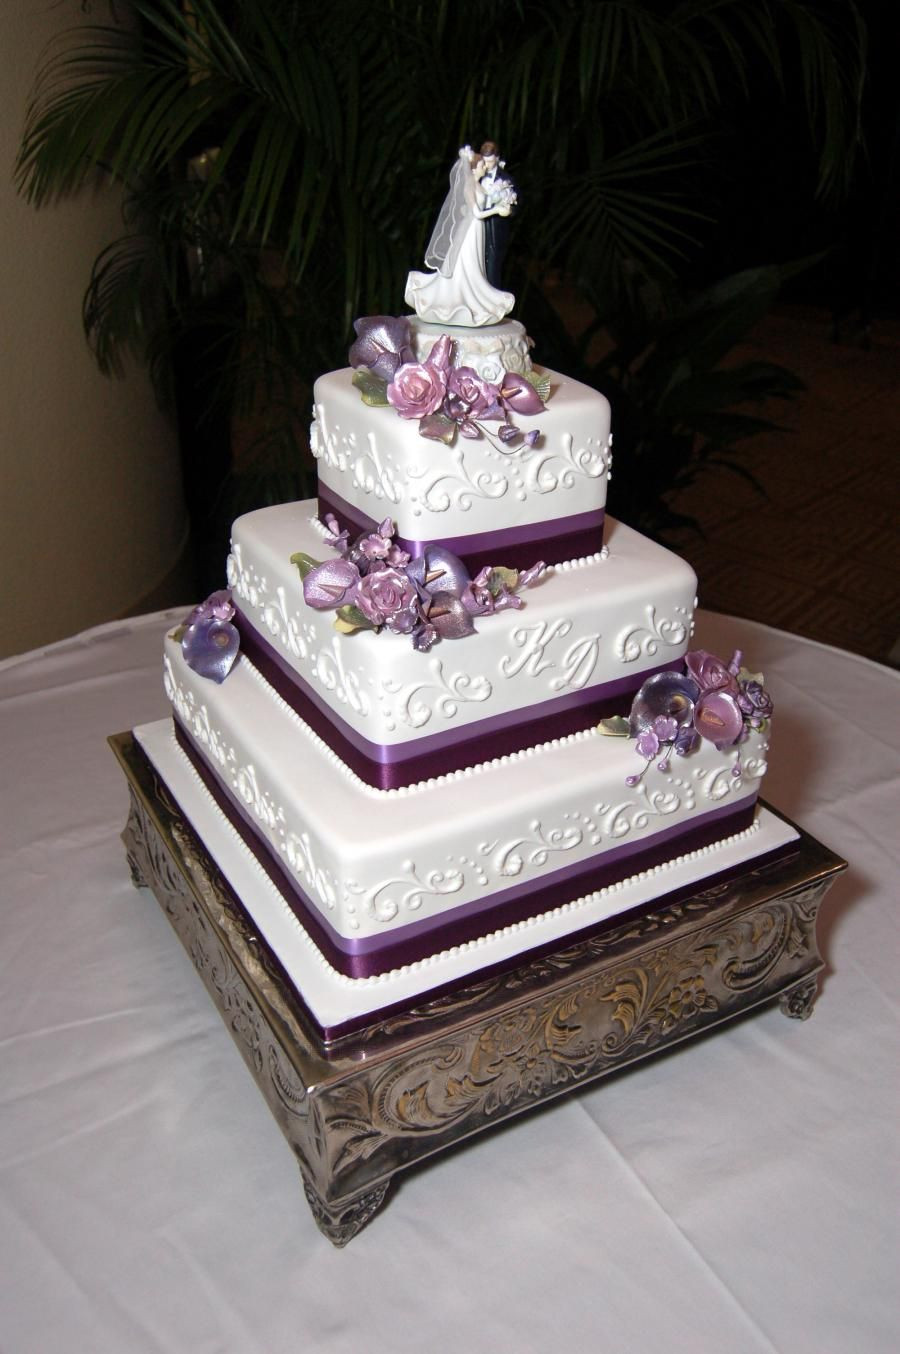 3 Tier Square Wedding Cakes  This 3 tier square wedding cake is simple and elegant